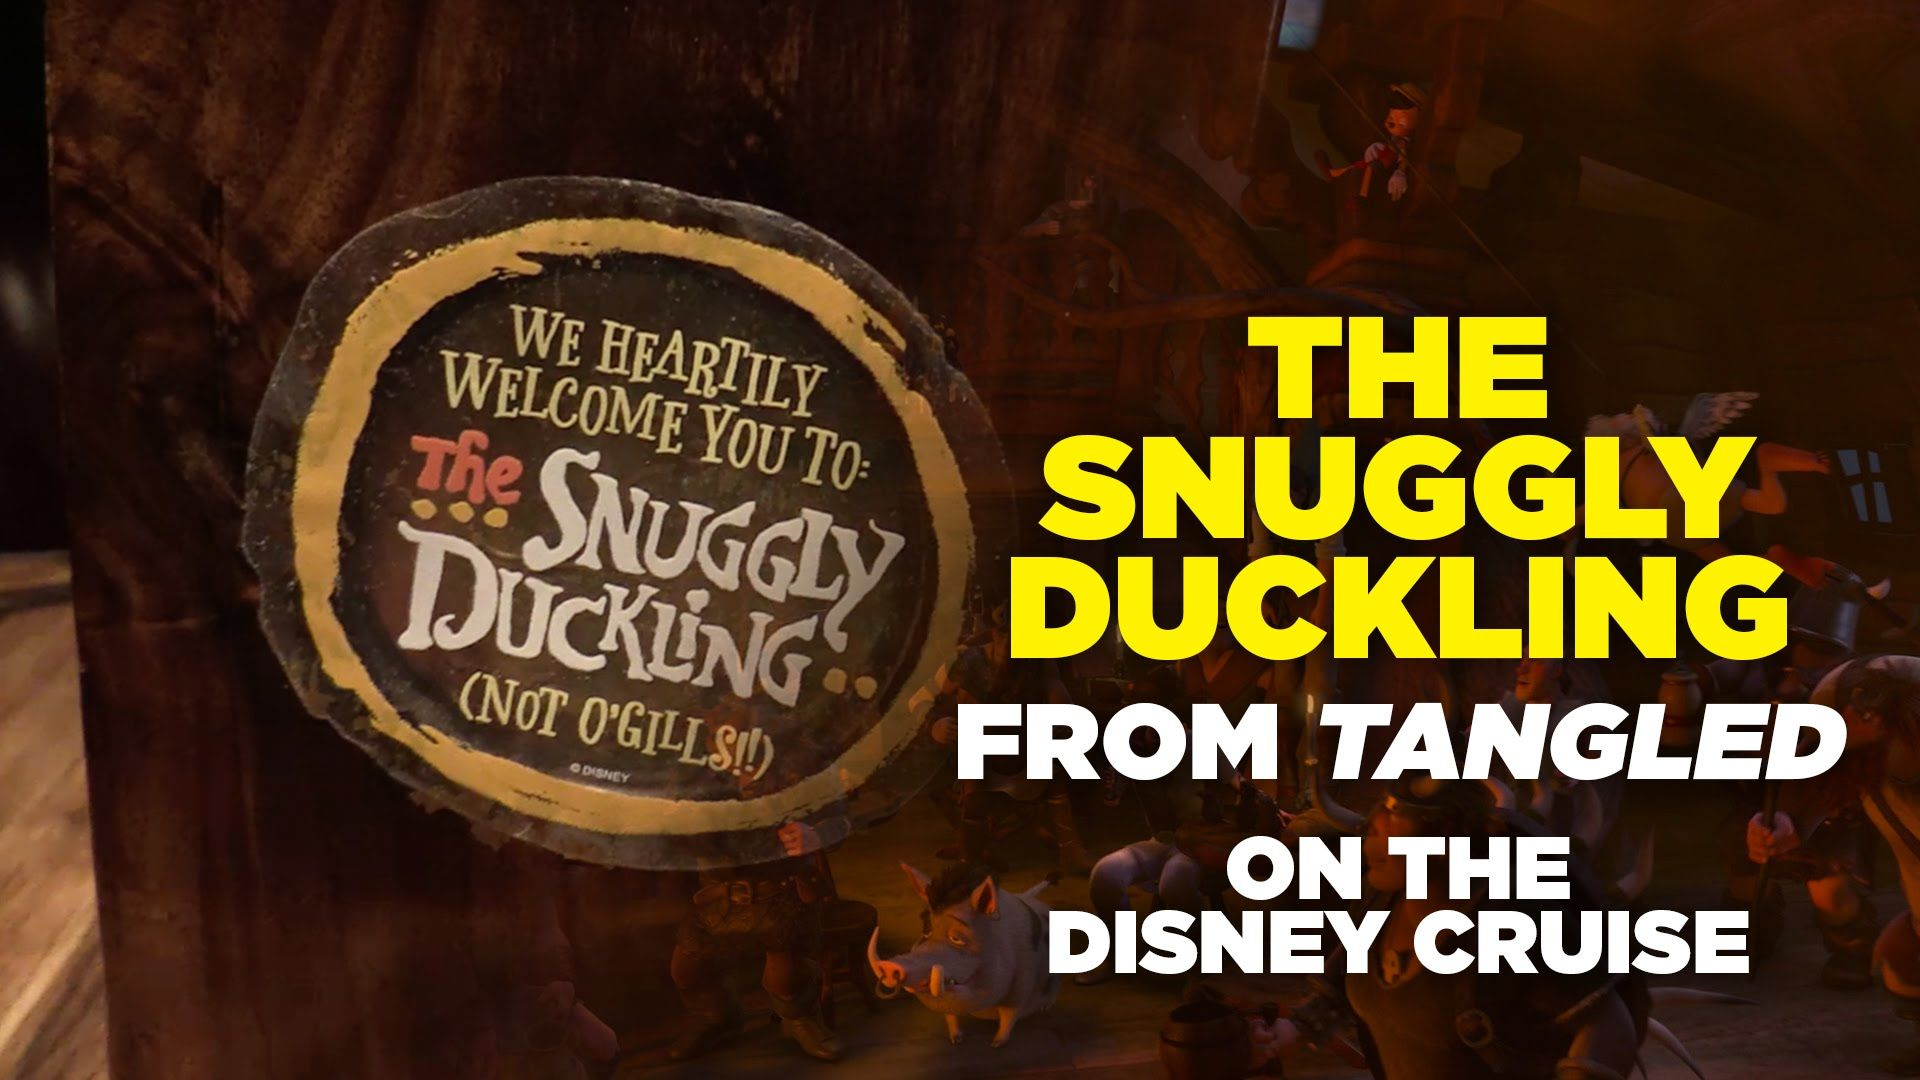 Snuggly Duckling Tangled Pub on the Disney Magic cruise ship